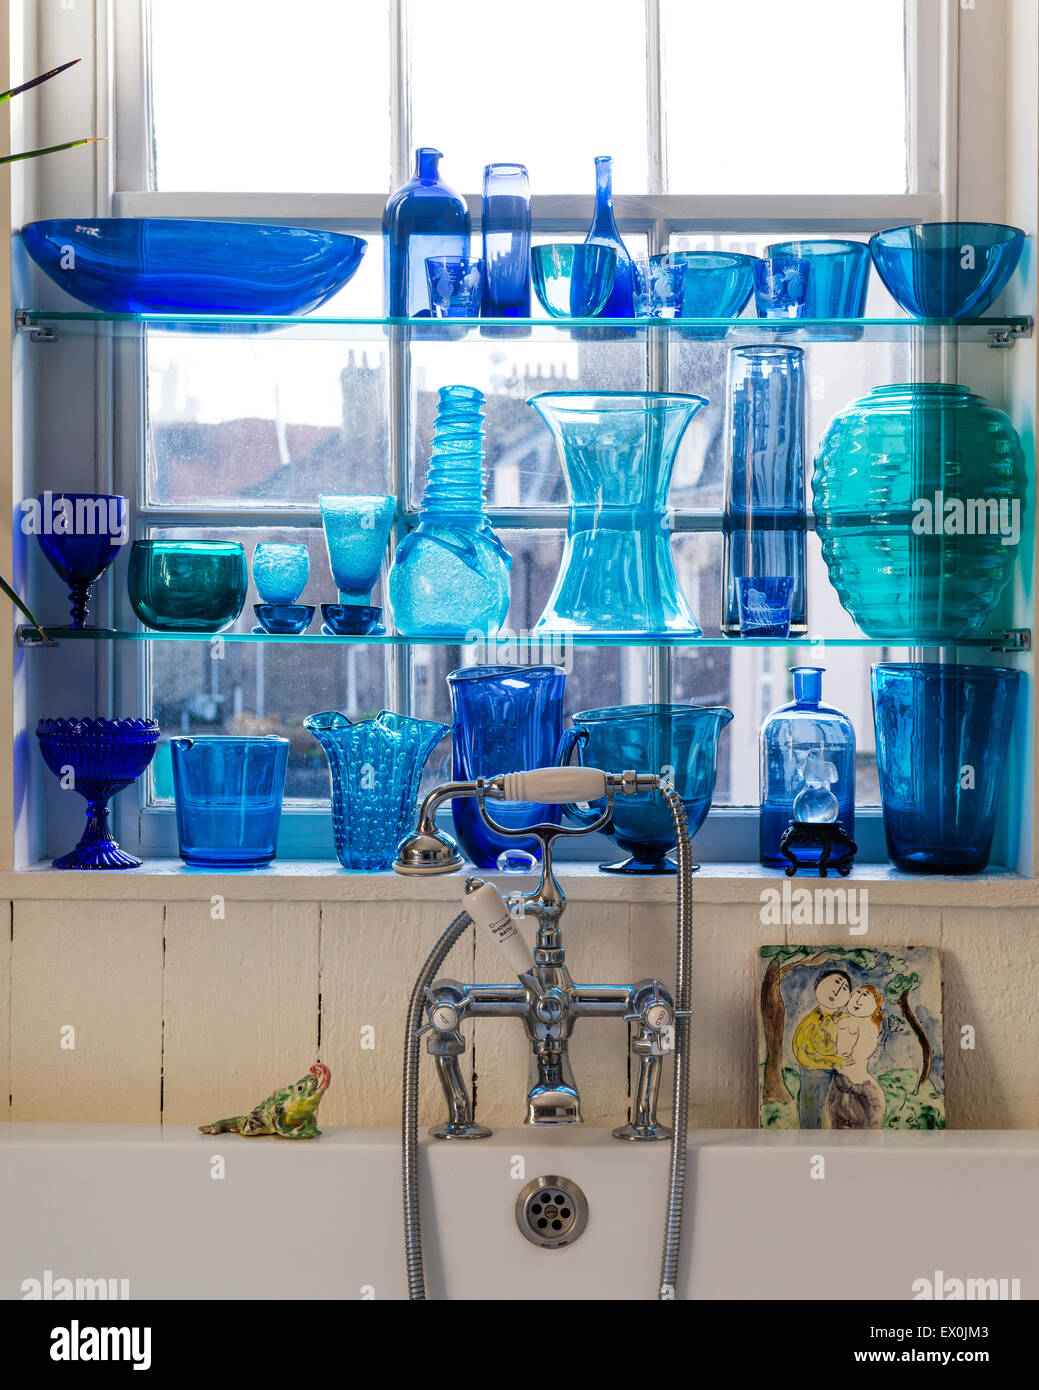 Collection of blue glassware on shelving in bathroom - Stock Image